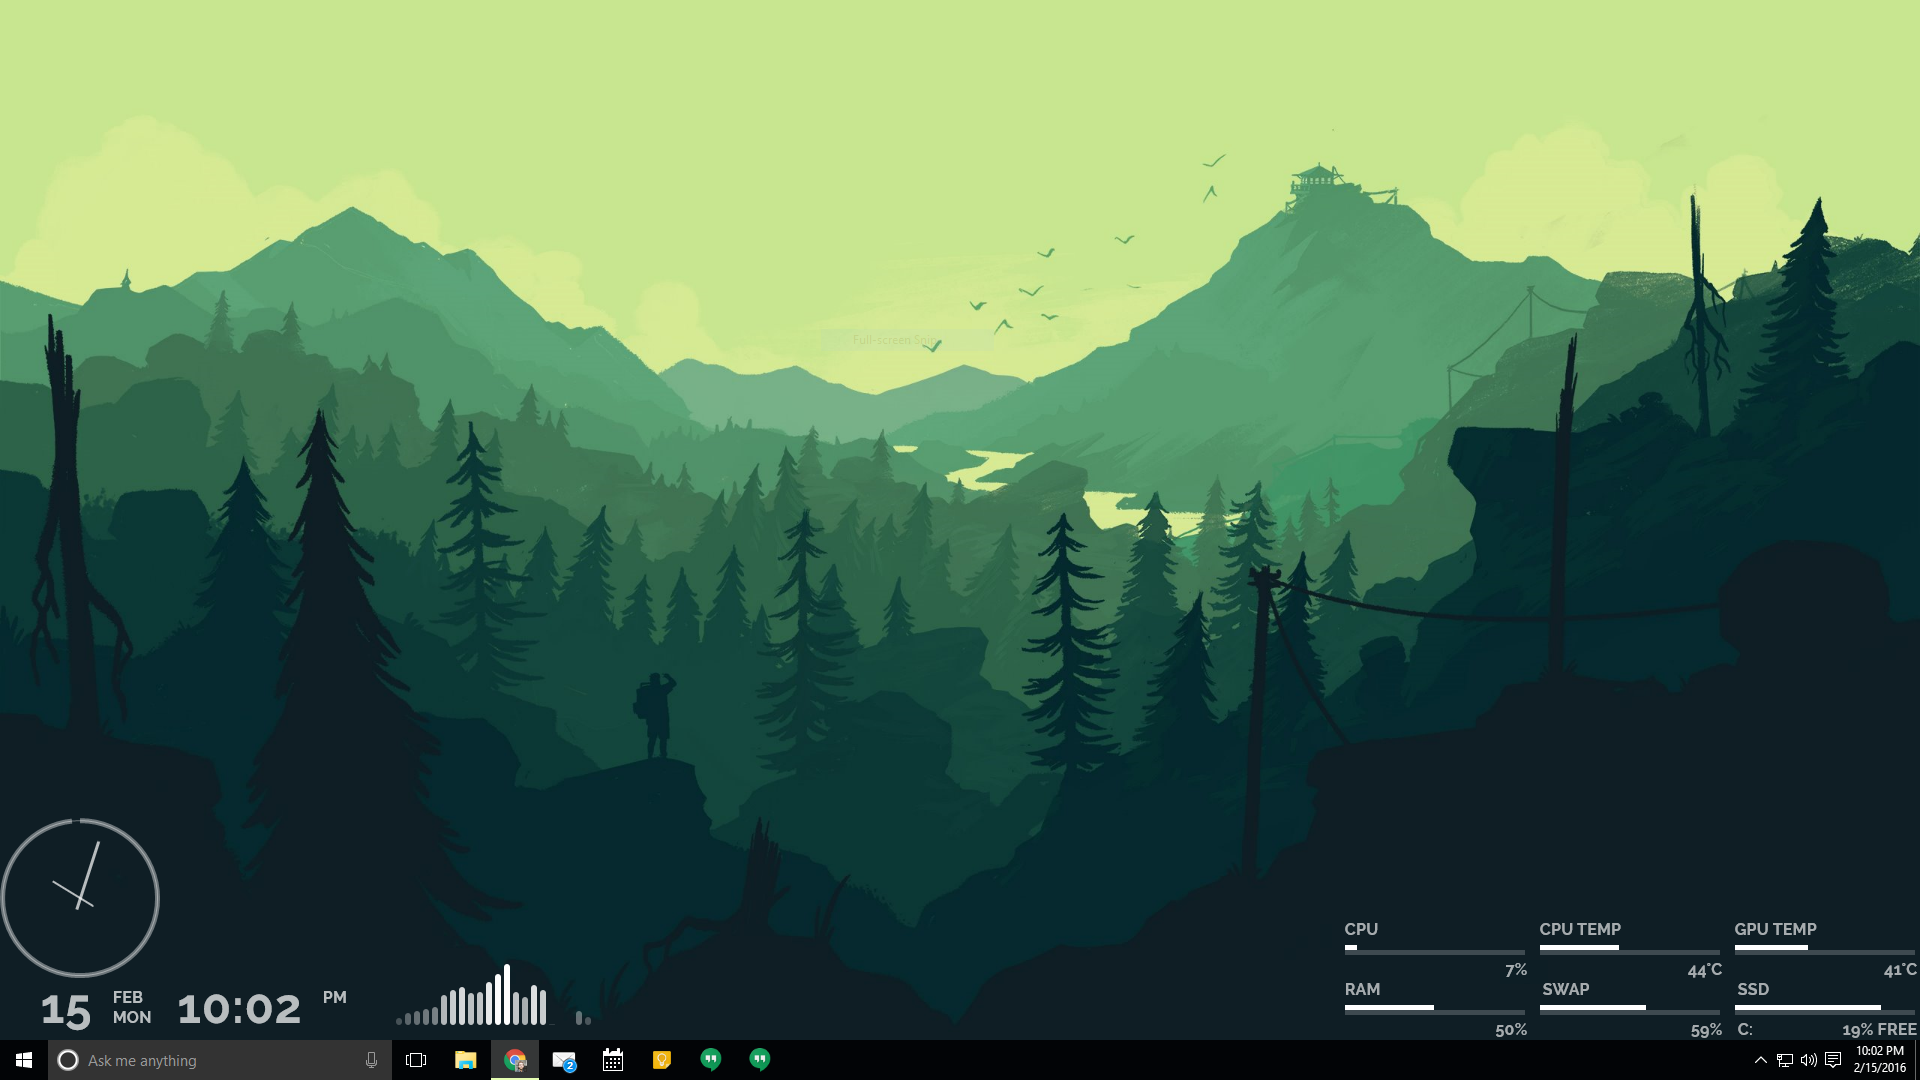 The Sunset Firewatch Desktop